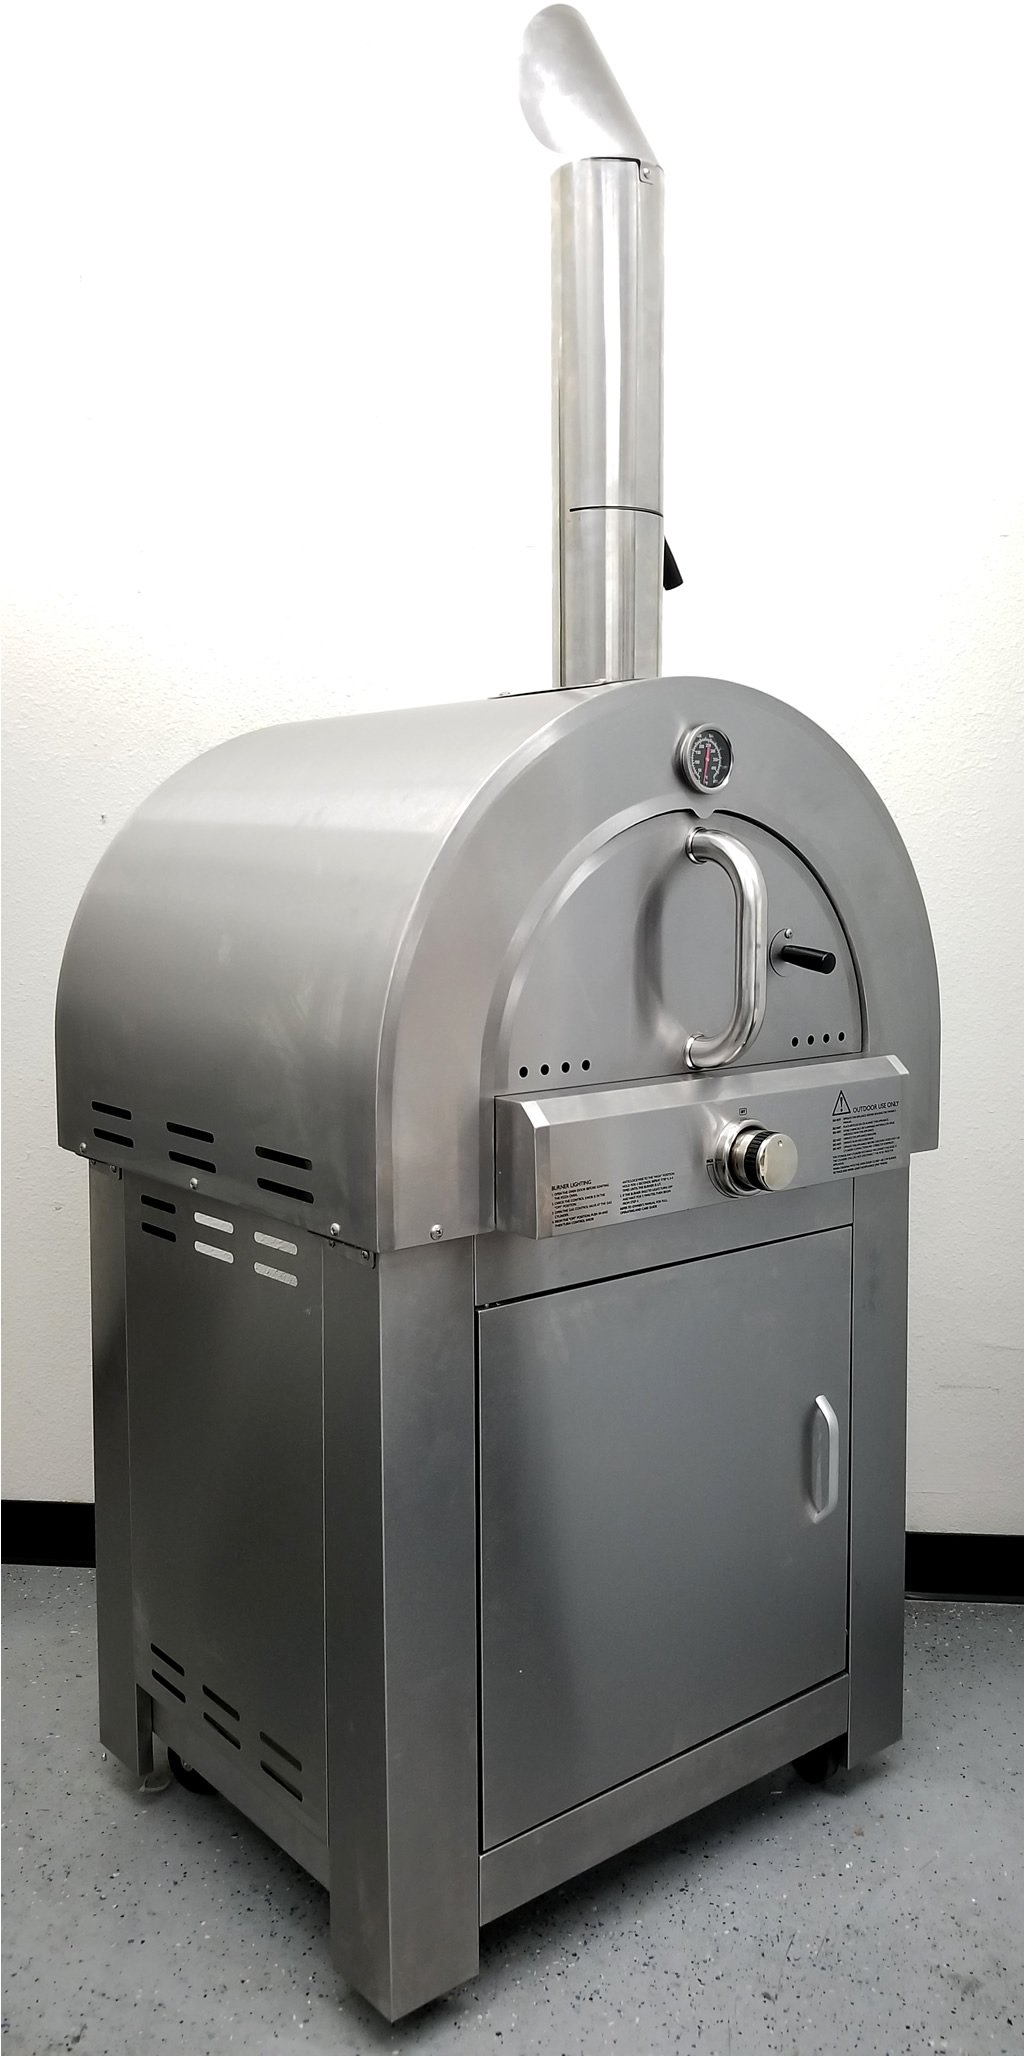 30.5'' LPG Propane Gas Stainless Steel Artisan Pizza Oven or Grill, Outdoor or Indoor